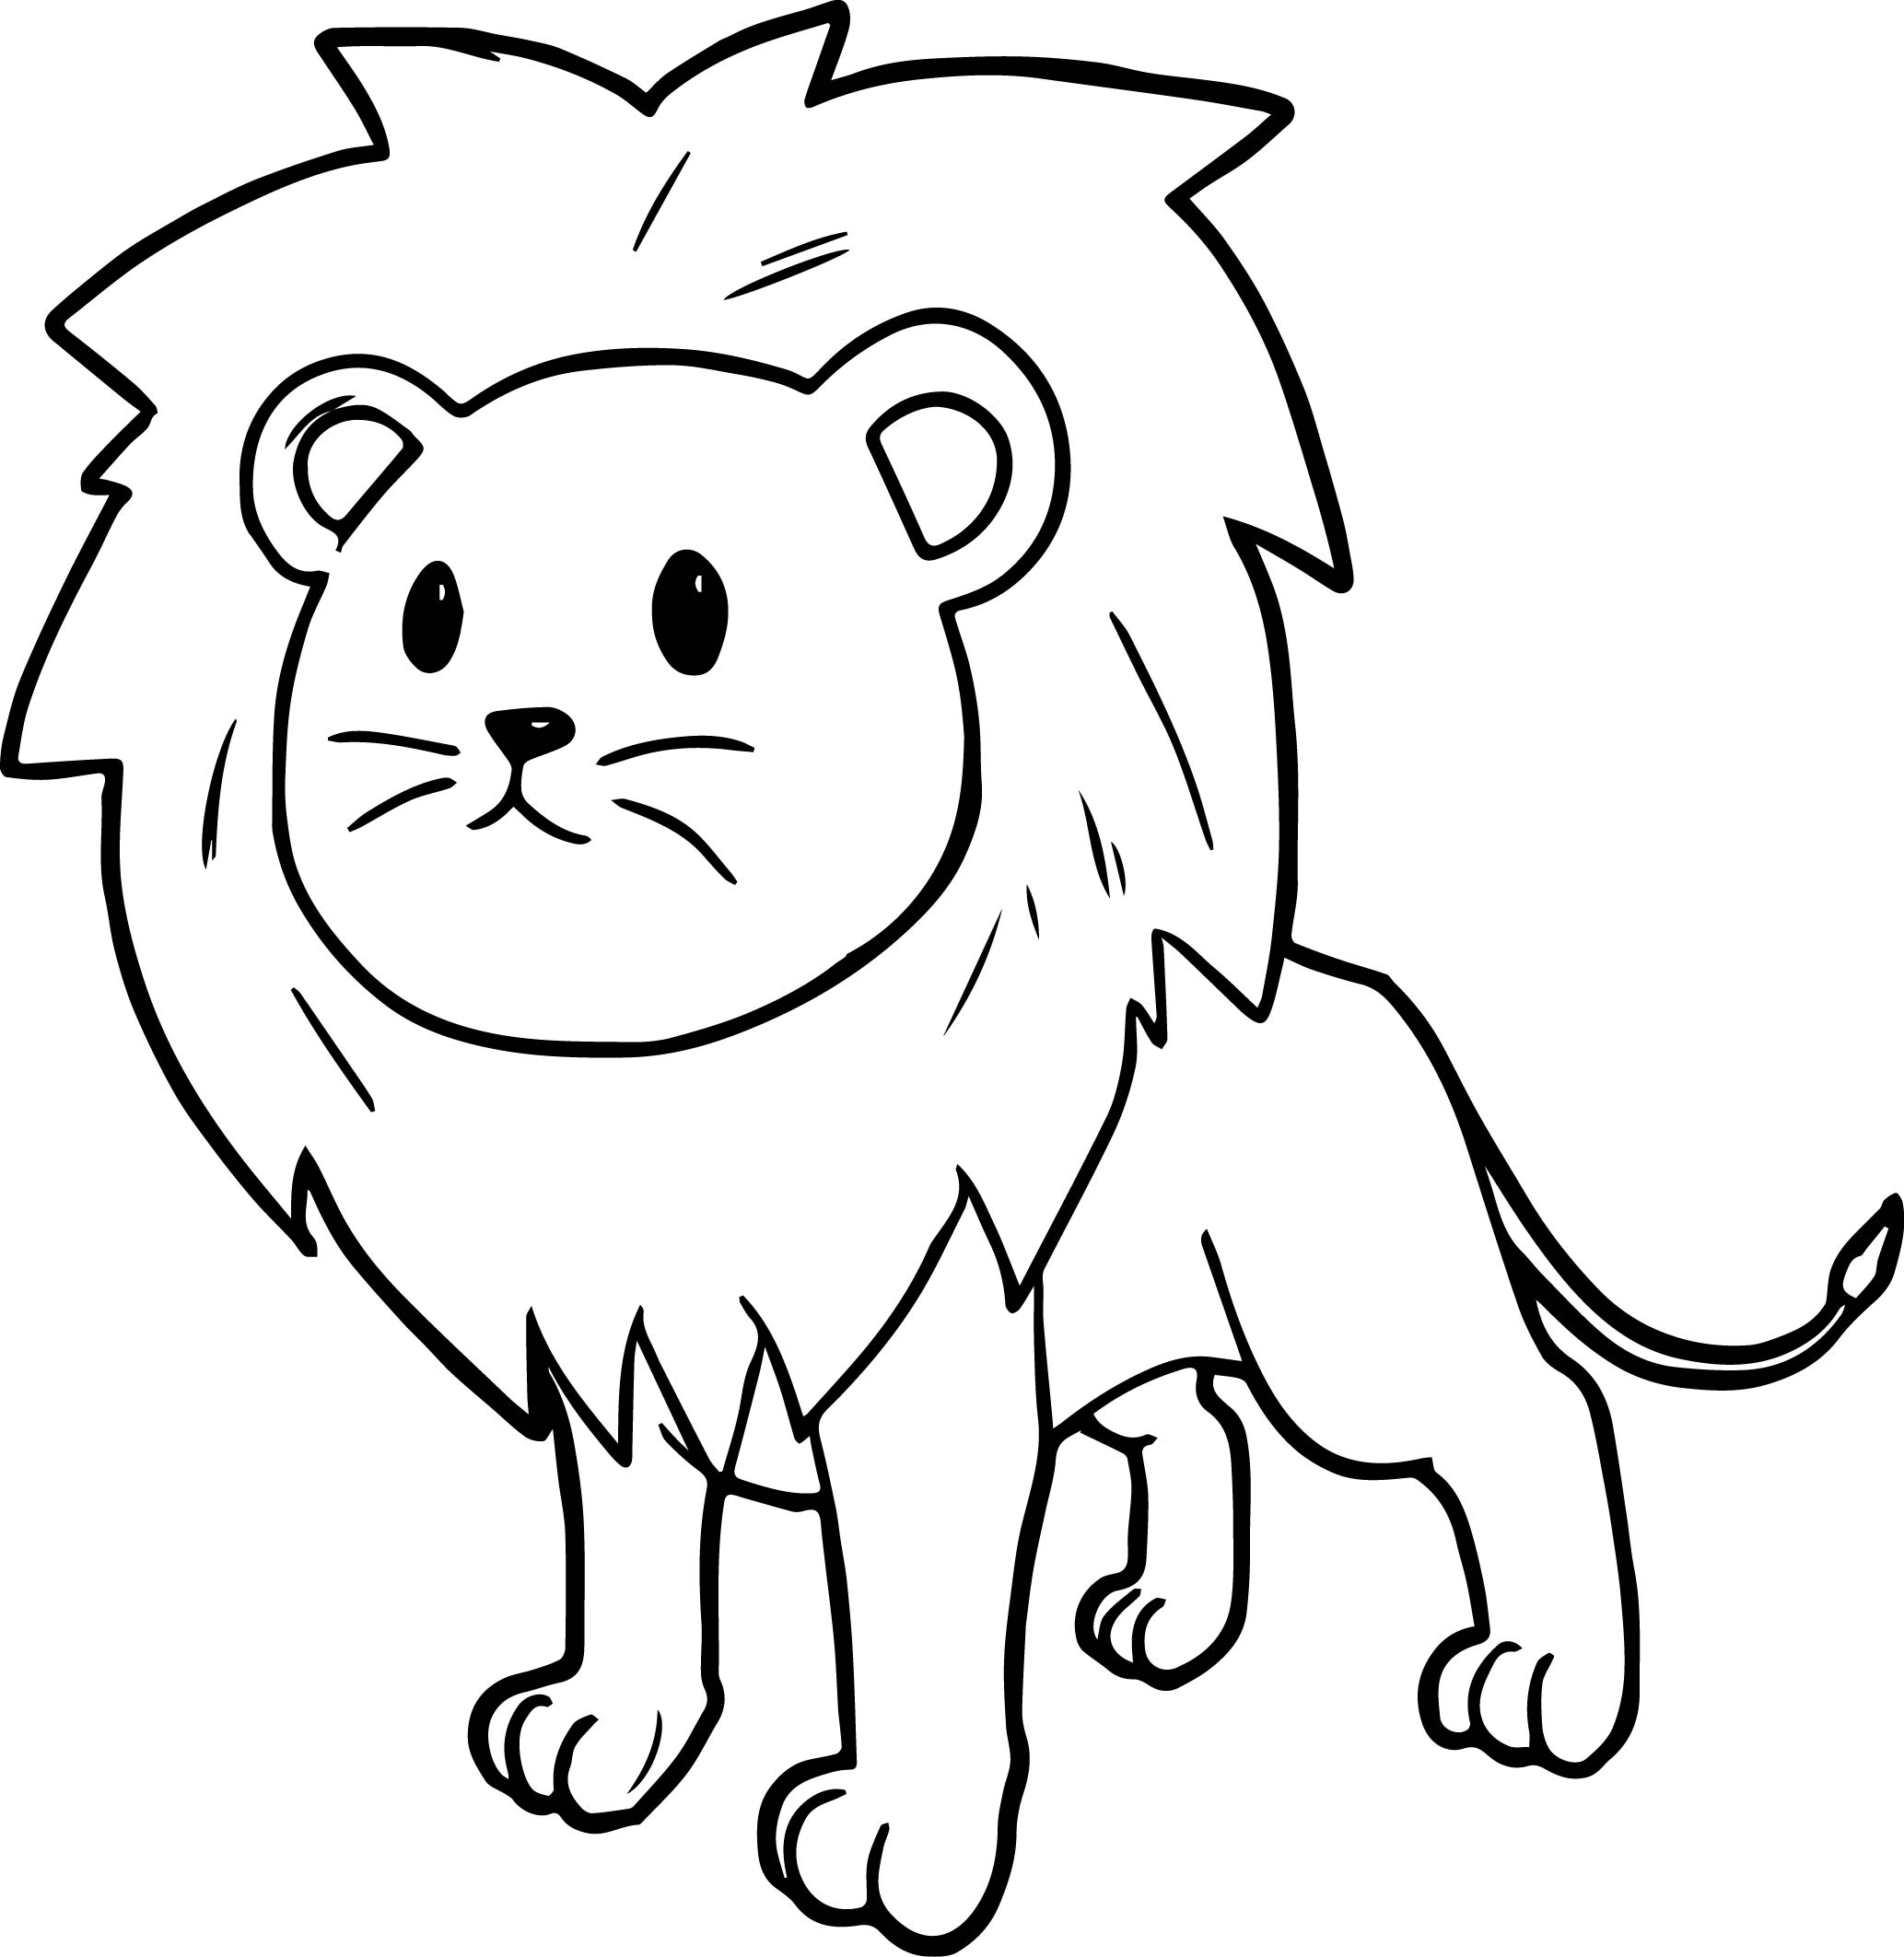 2067x2125 Lion Coloring Page Inspirational Lion Cartoon Colouring Pages